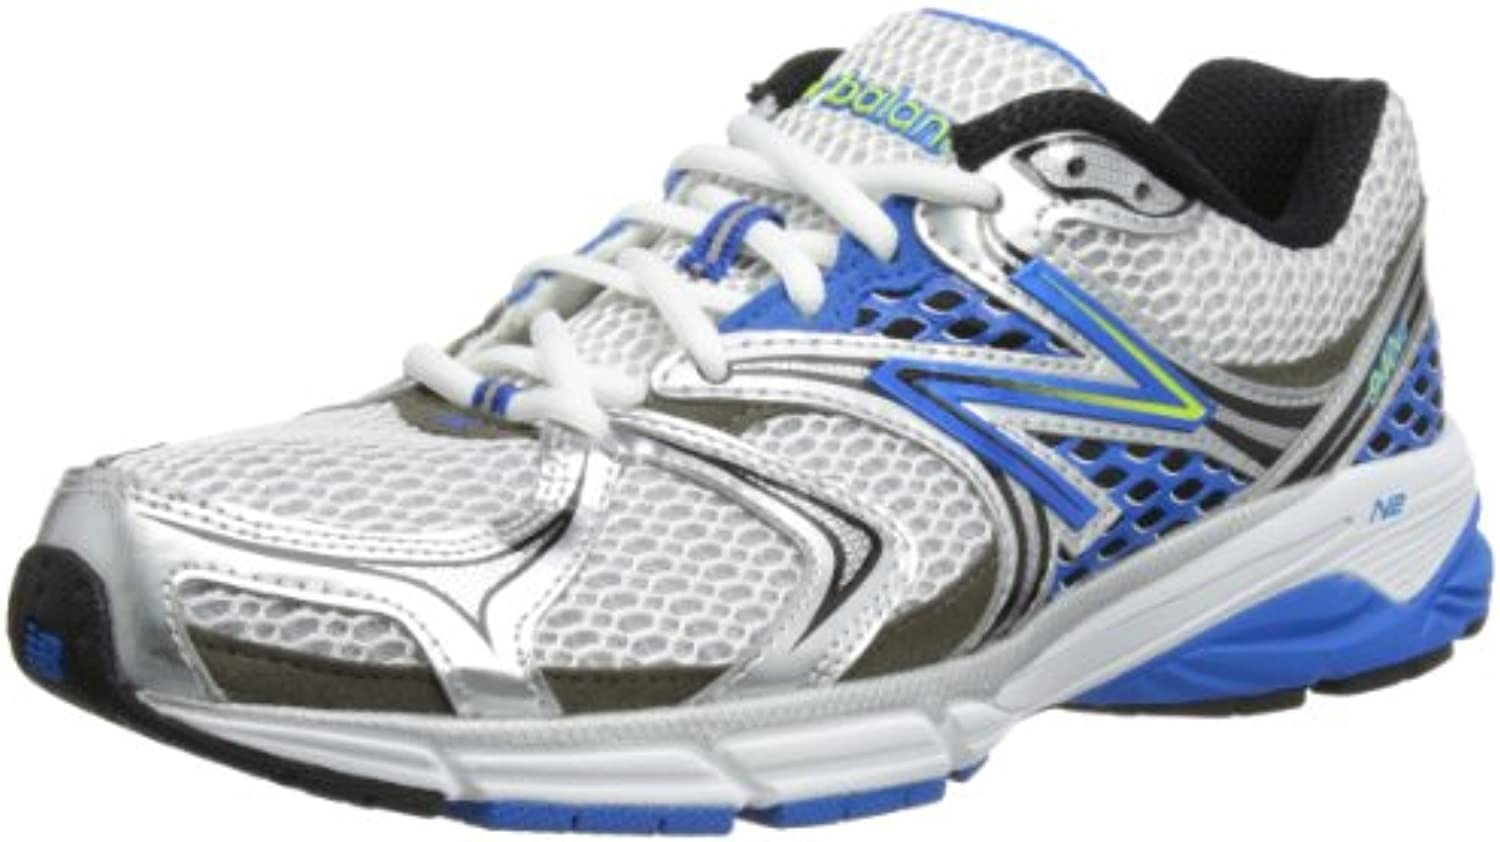 New Balance M940Wb2 - Zapatillas de running